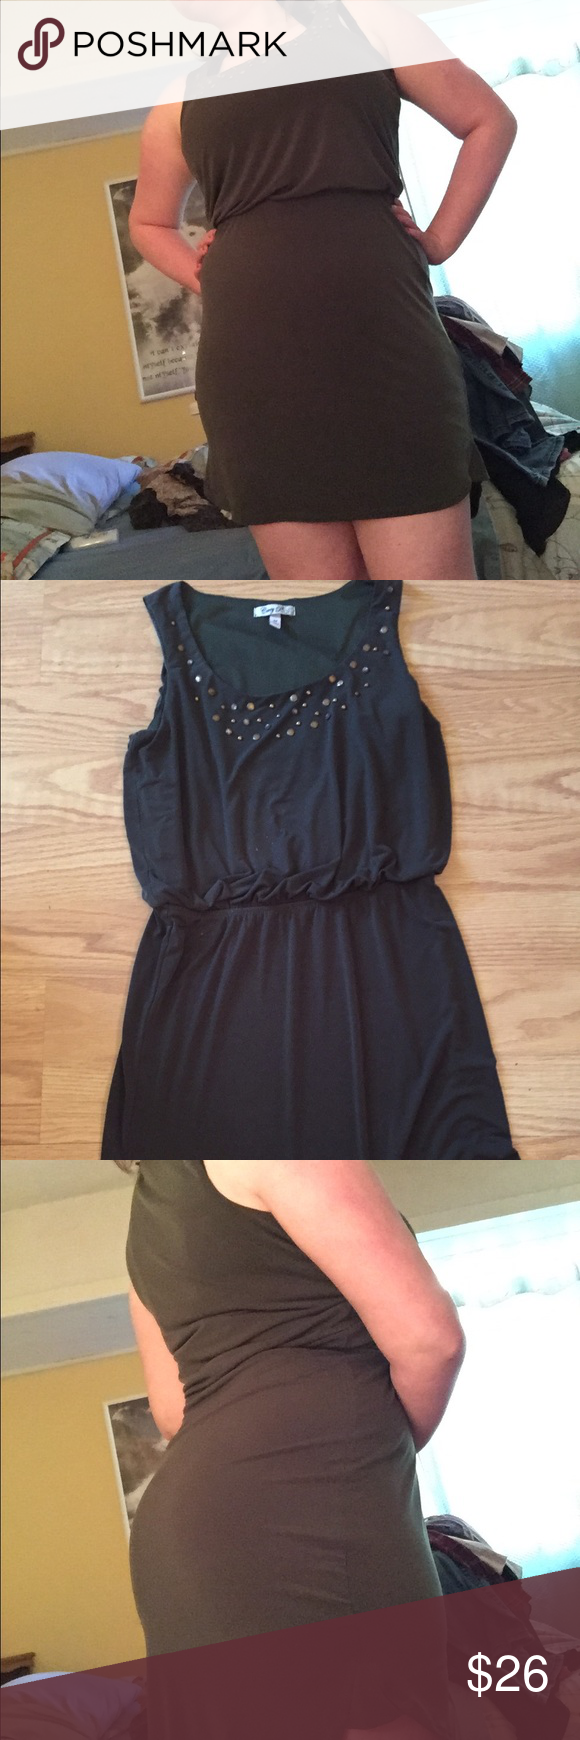 Emerald Mini Dress Medium sized Corey P green dress with bead detail at the collar very comfortable synchs in at natural waist. Feel free to give an offer! Macy's Dresses Mini